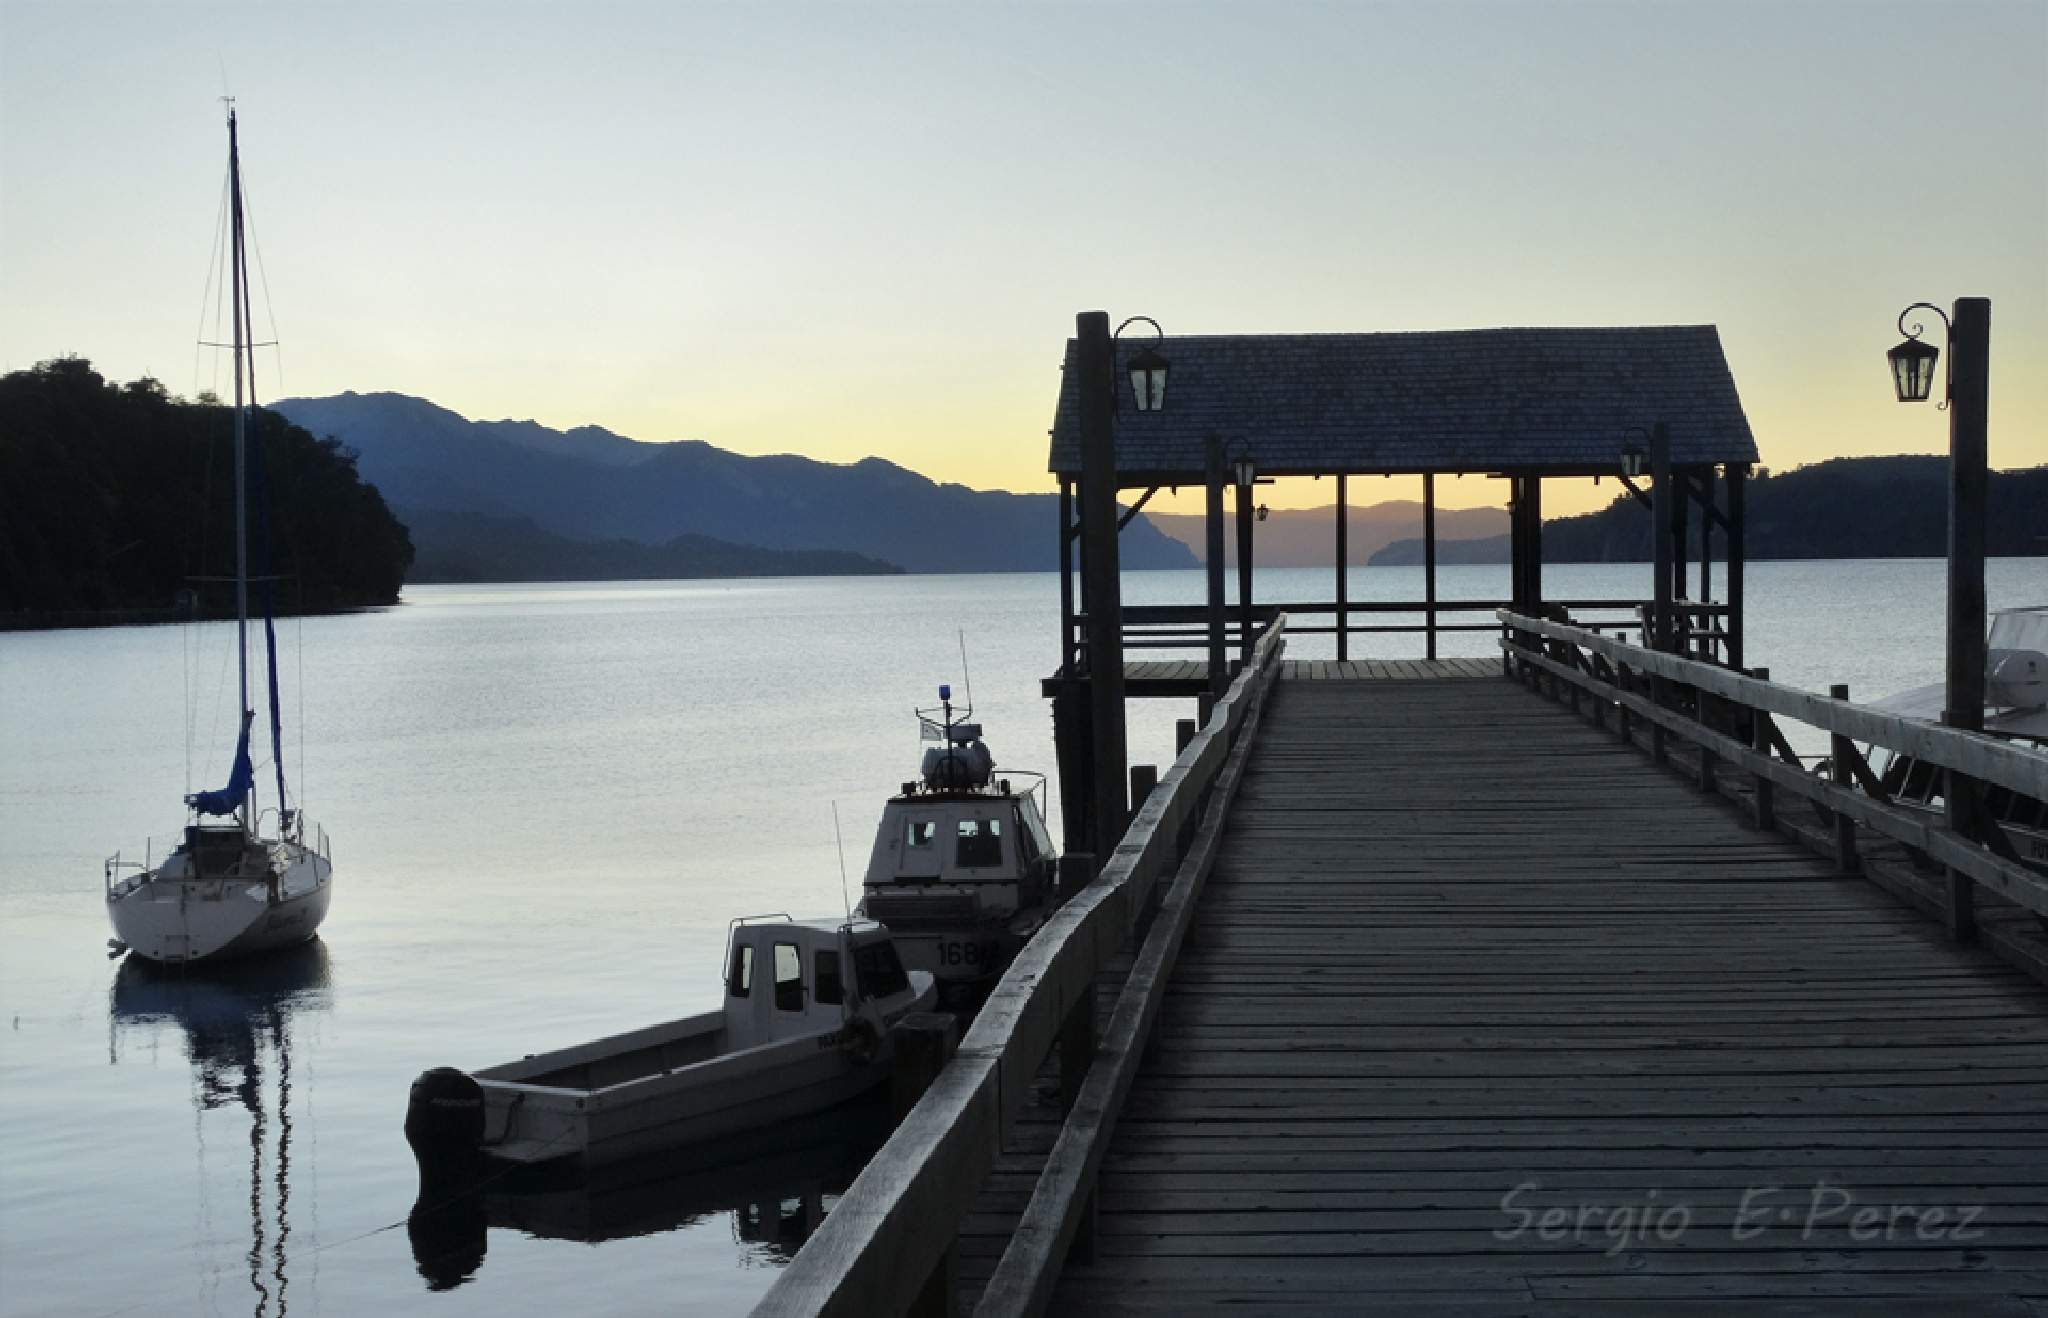 The lonely dock... by SergioPerez